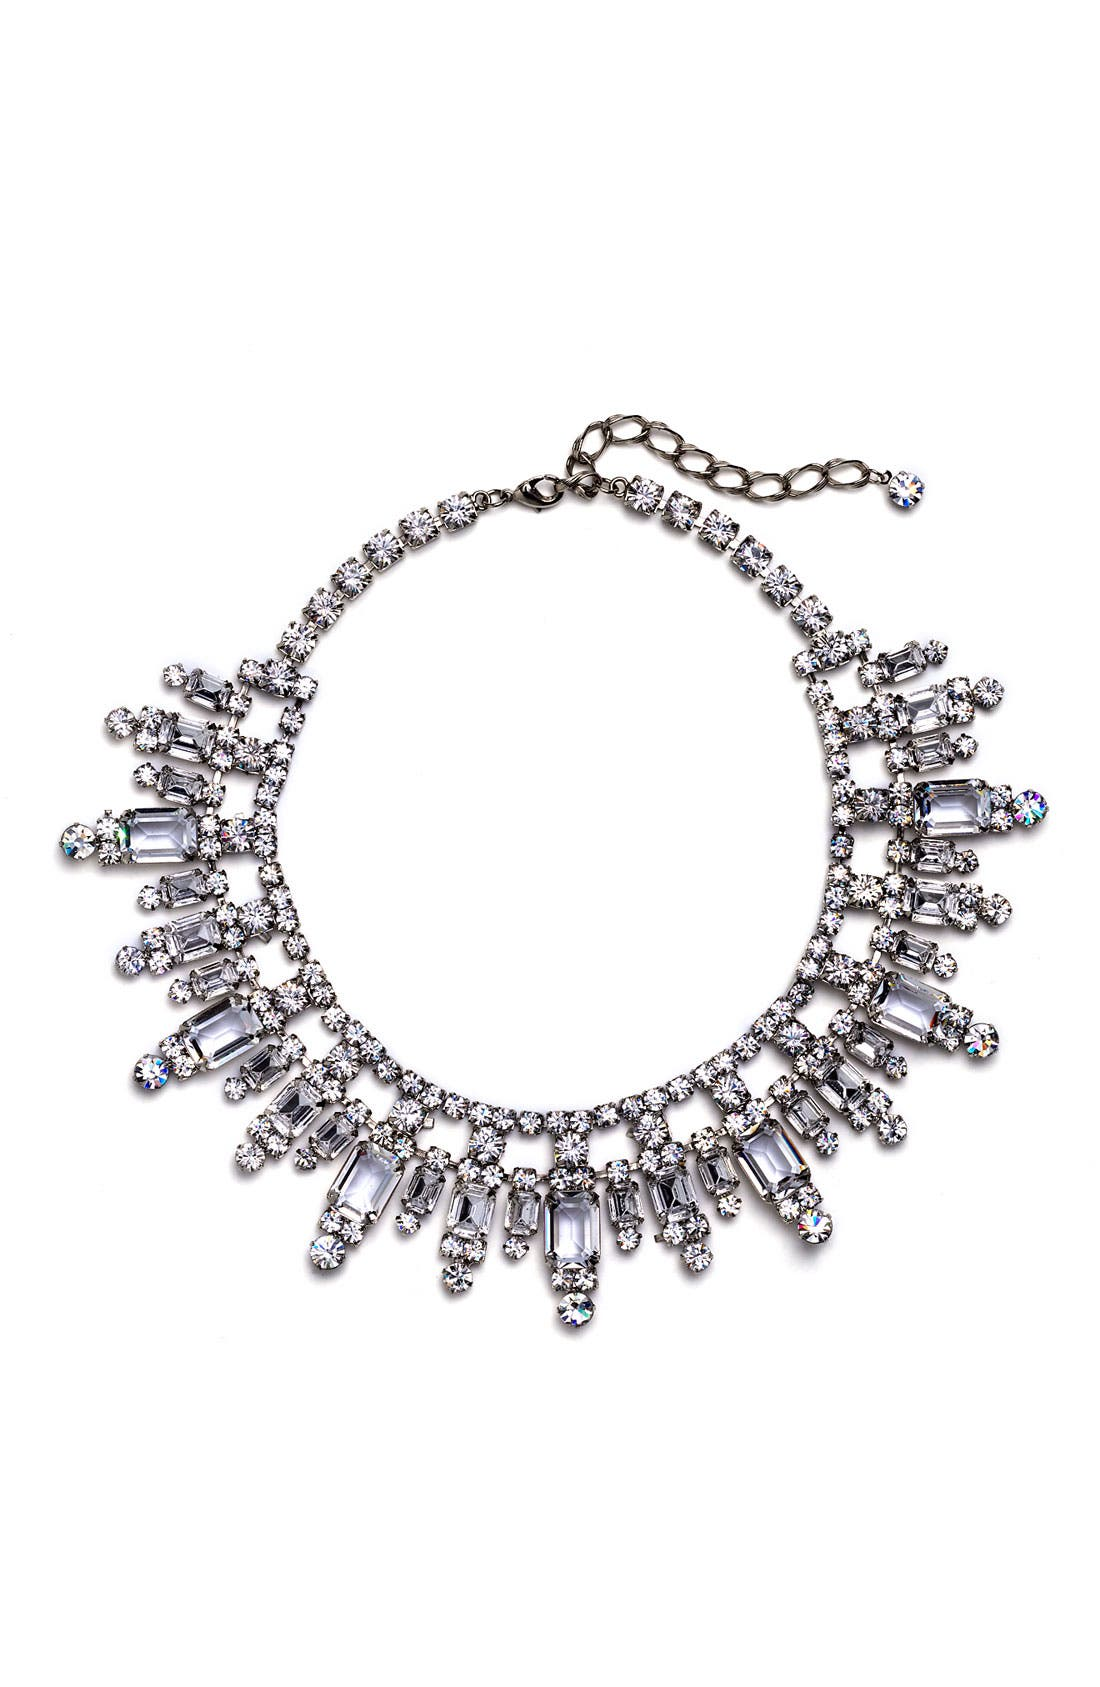 Main Image - Nordstrom Crystal Collection Bib Necklace